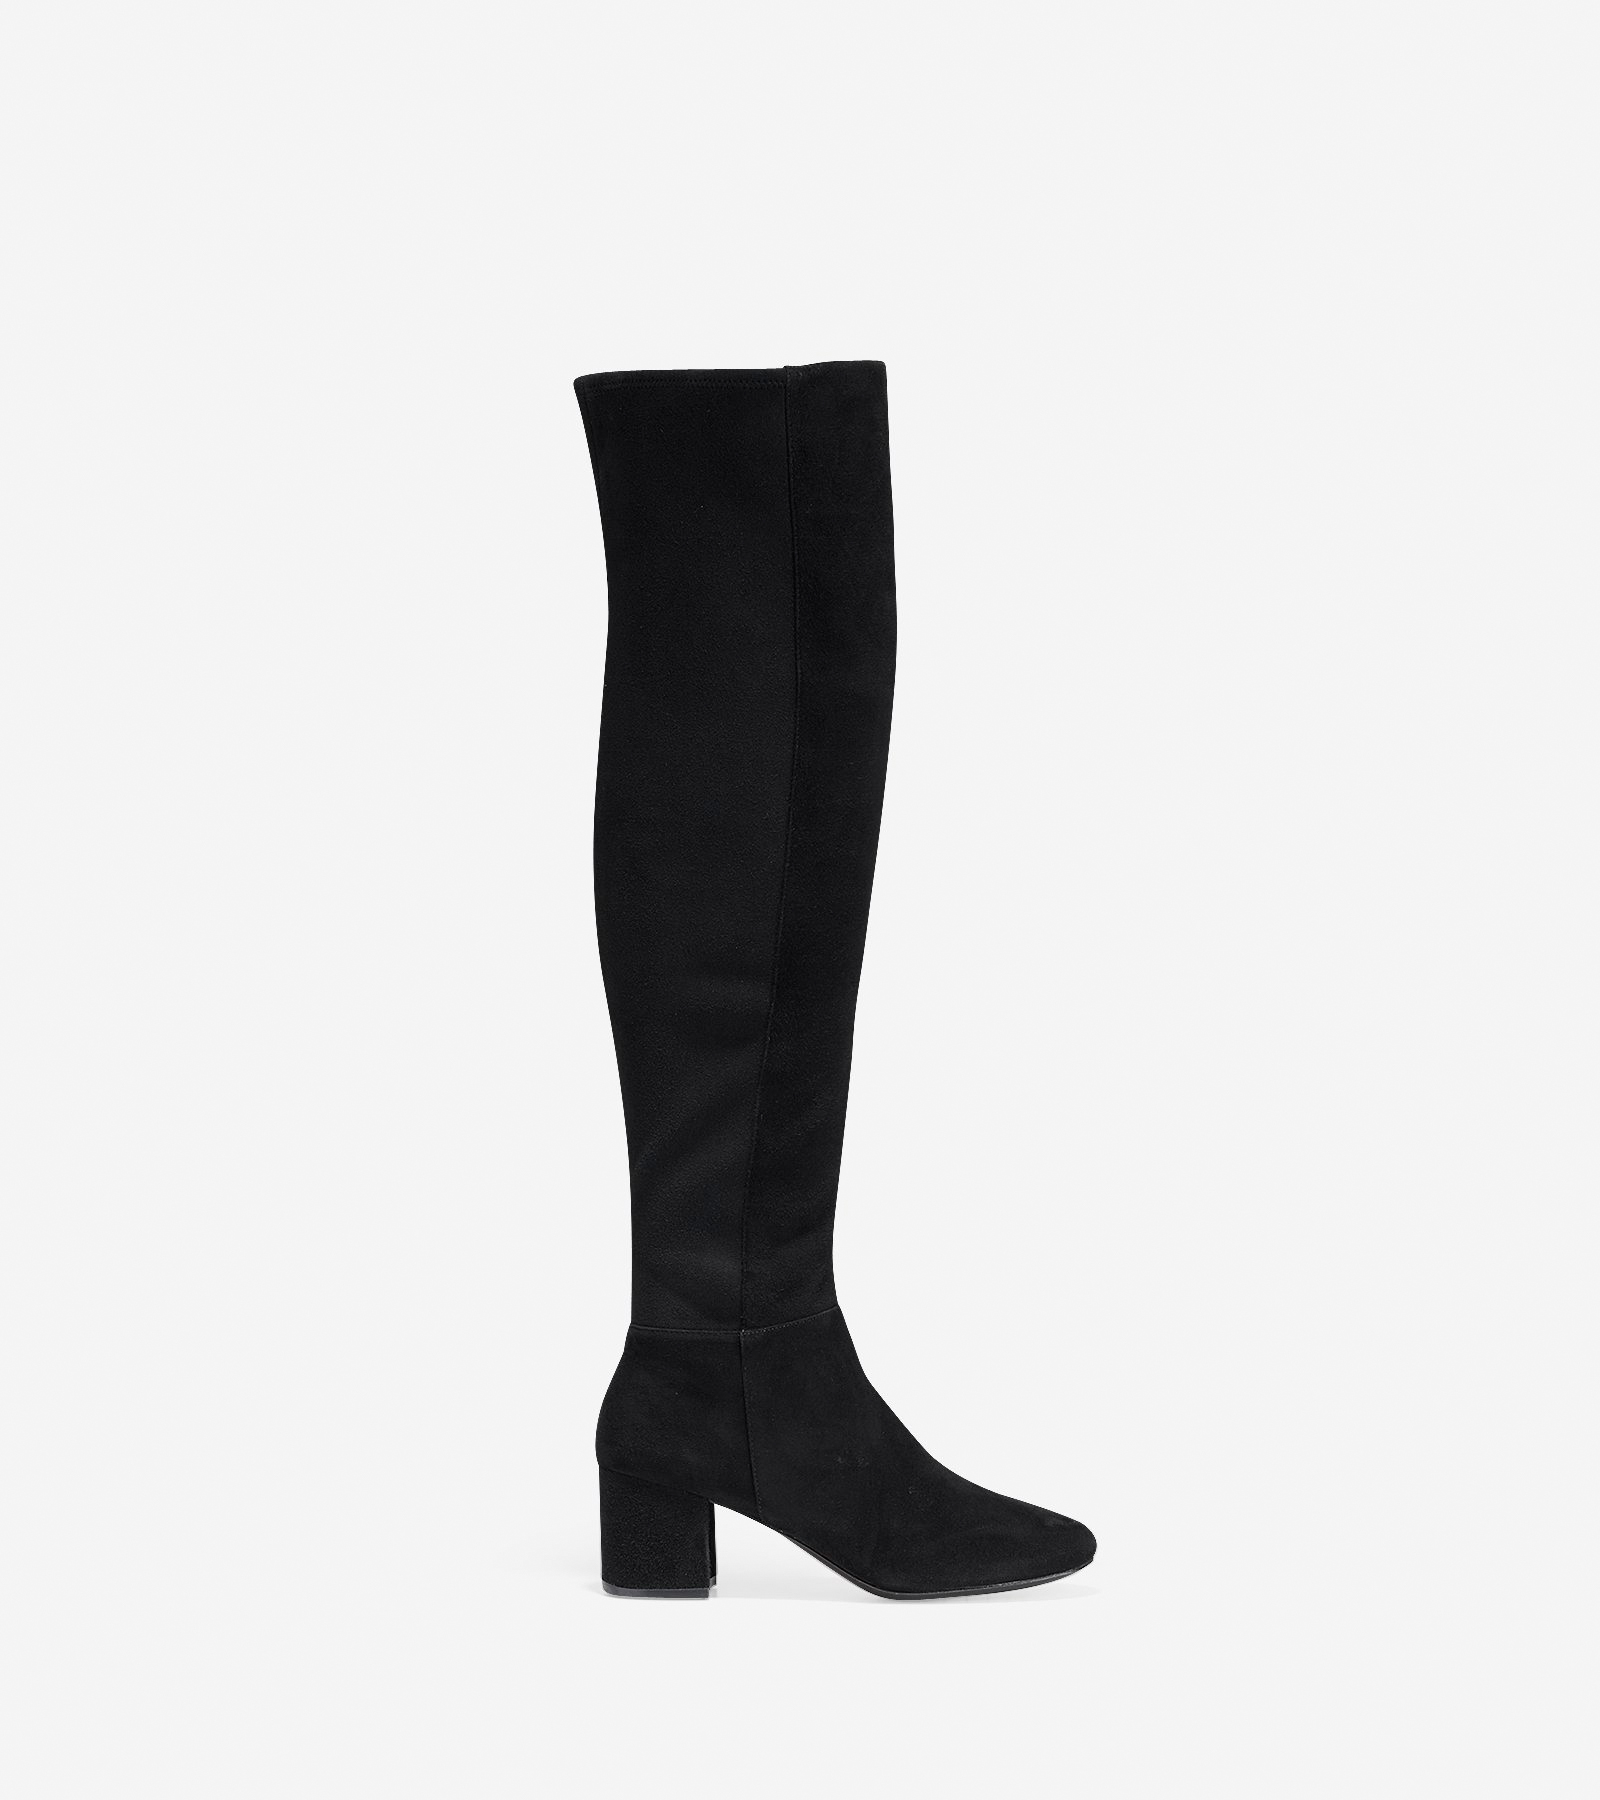 7fab7e033 Women's Elnora Over The Knee Boot (60mm) in Black Suede | Cole Haan US